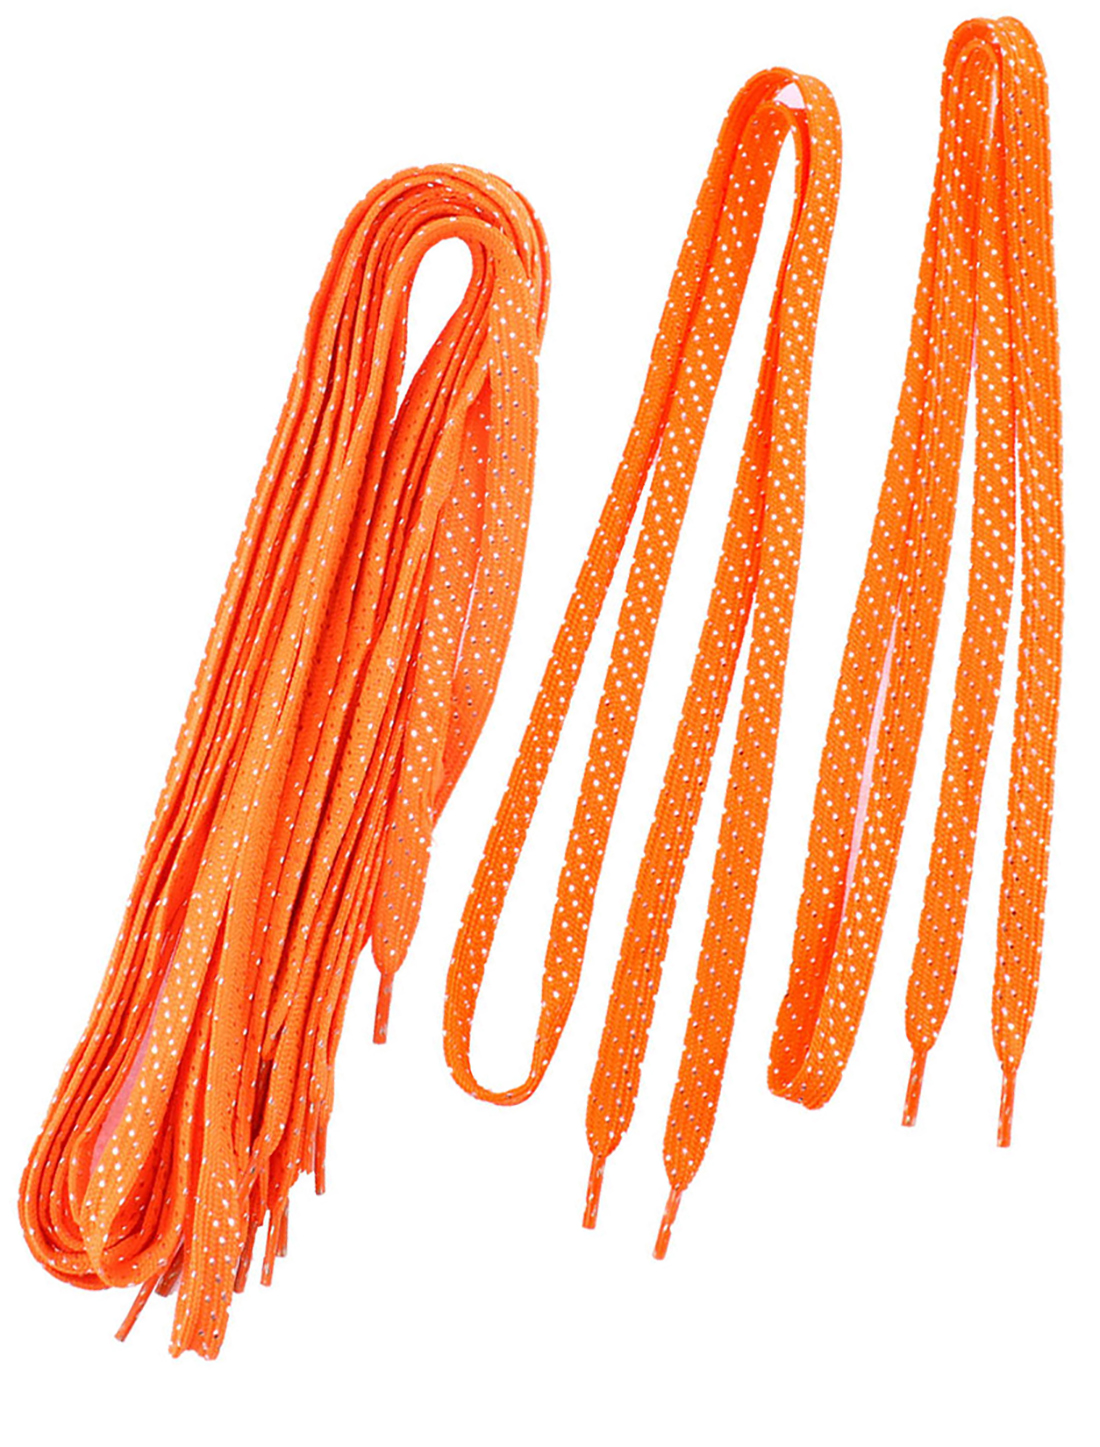 Sneakers Glitter Tinsel Design Cotton Blend Flat Shoelaces Orangered 5 Pairs